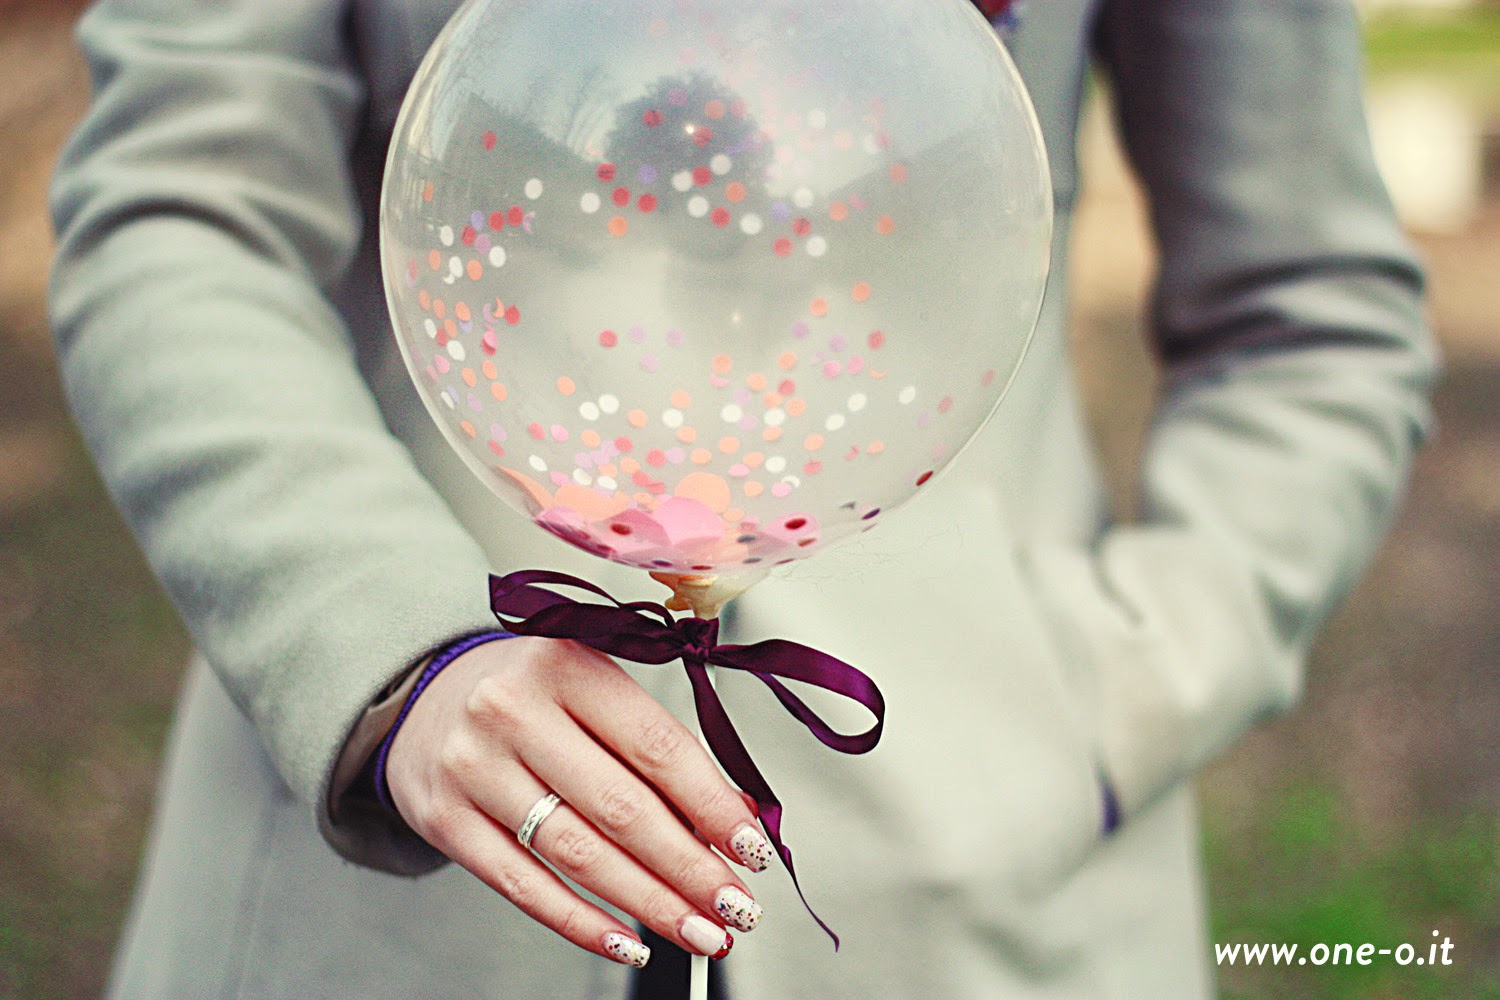 http://www.one-o.it/the-confetti-series-diy-balloon-decor/#.UyWgzYXLI3A